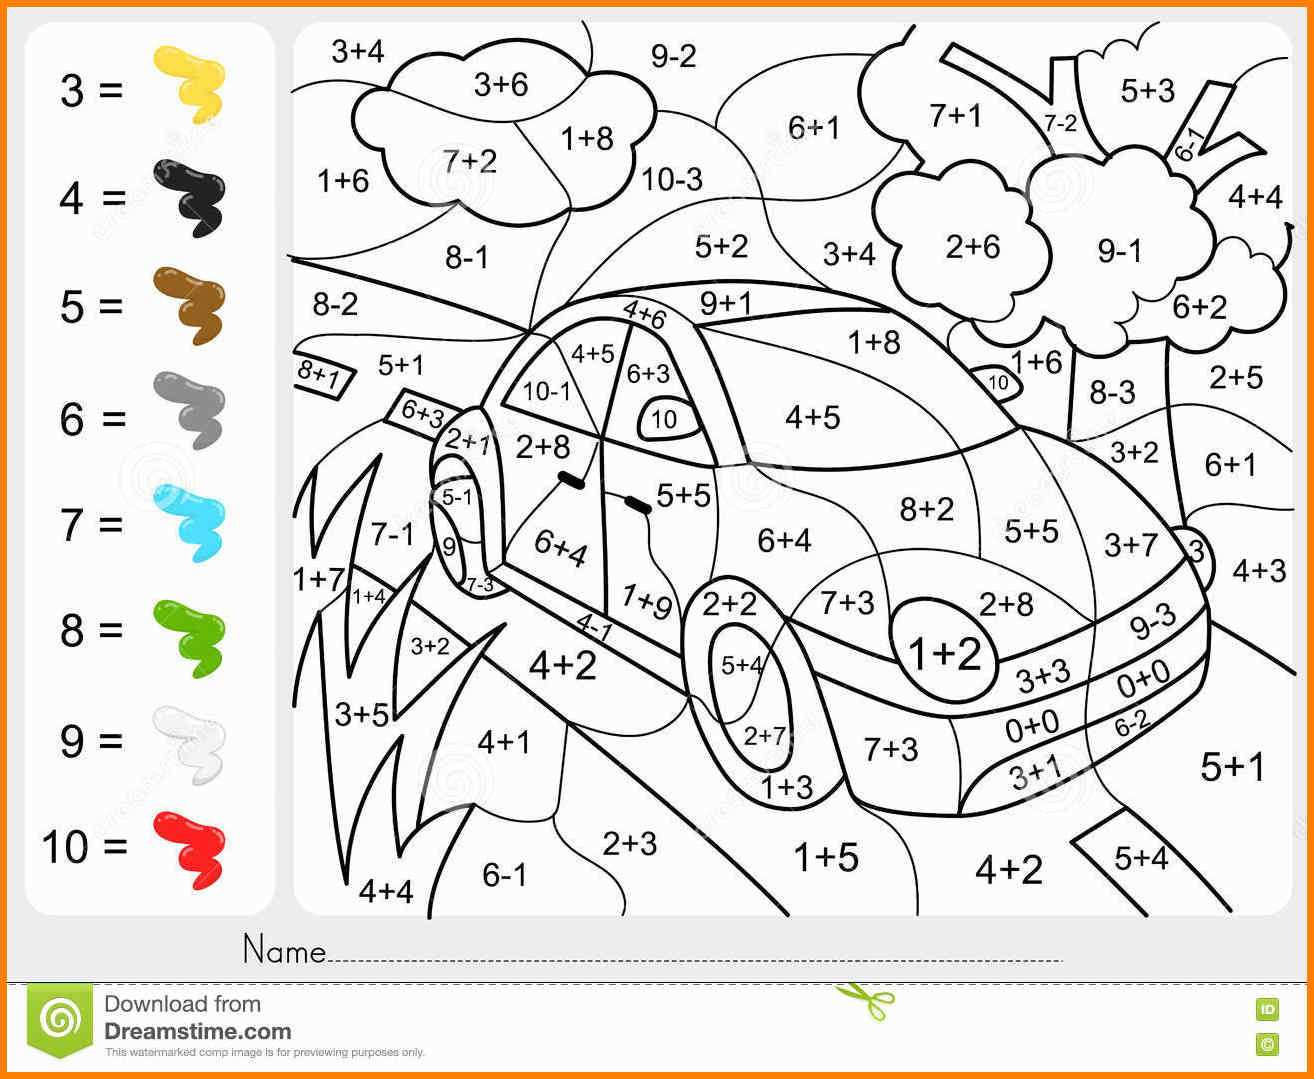 2Nd Grade Coloring Pages Best Of 2Nd Grade Science Worksheets & Free - Free Printable Math Coloring Worksheets For 2Nd Grade